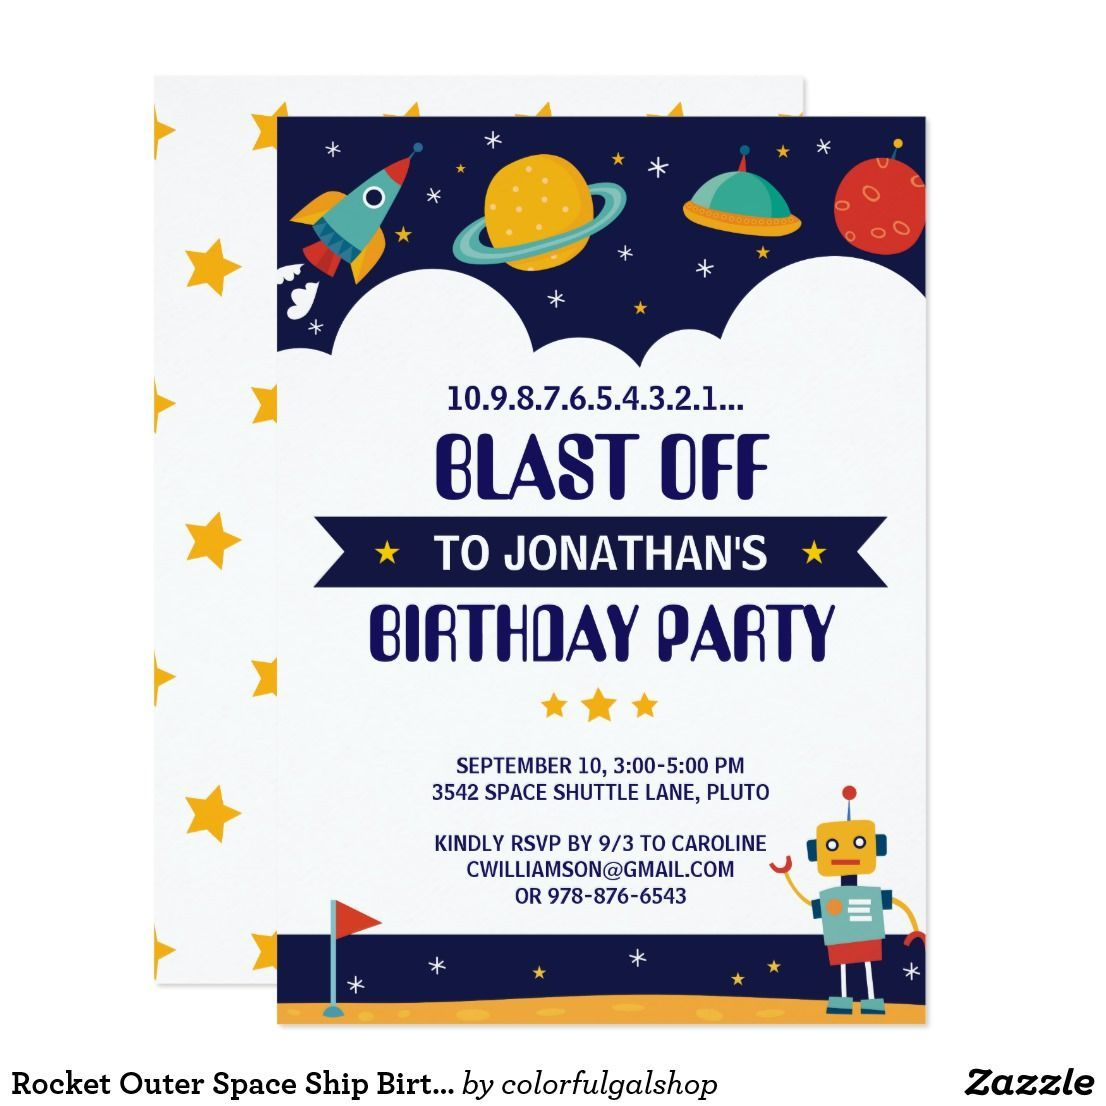 Rocket Outer Space Ship Birthday Party Invitation | Zazzle.com #outerspaceparty Rocket Outer Space Ship Birthday Party Invitation Blast off to another galaxy with this fun birthday party invitation featuring a space ship, planets, stars and more. Just add your party details to personalize. ❤  Affiliate ad link. Custom birthday party invitations / invites. #invitations #invites #birthdayparty #outerspaceparty